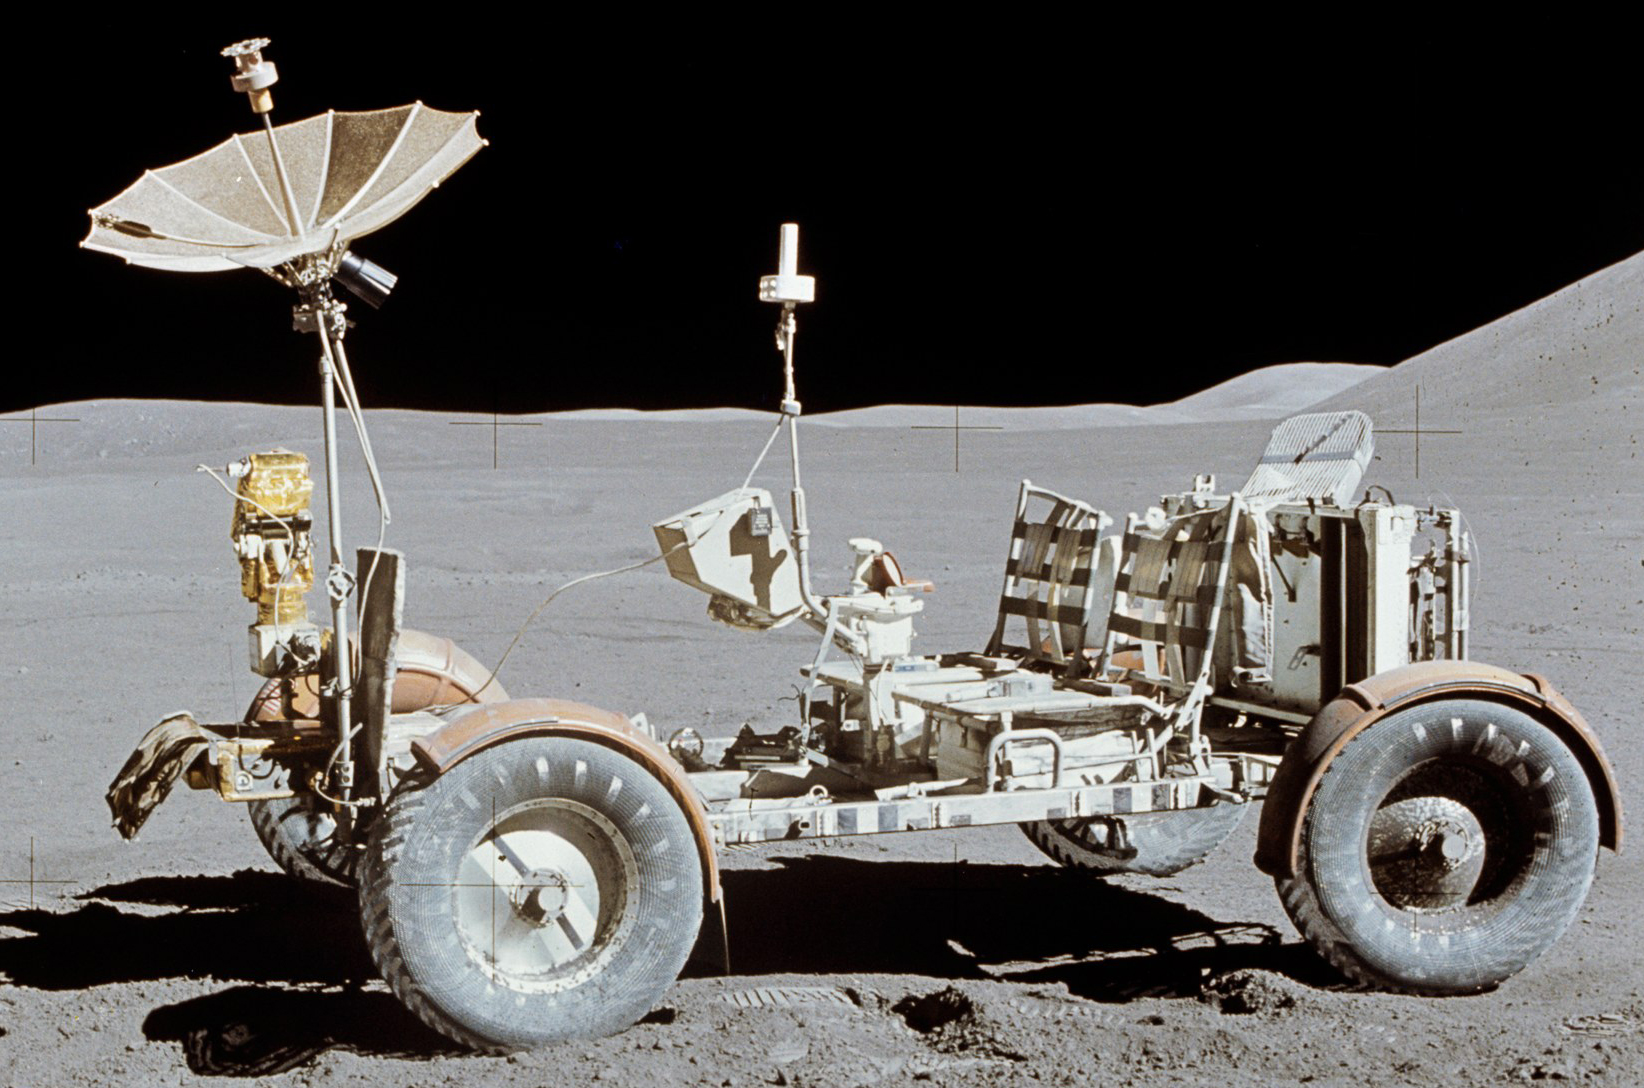 Luminosis: For Sale - One Lunar Rover, Cheap